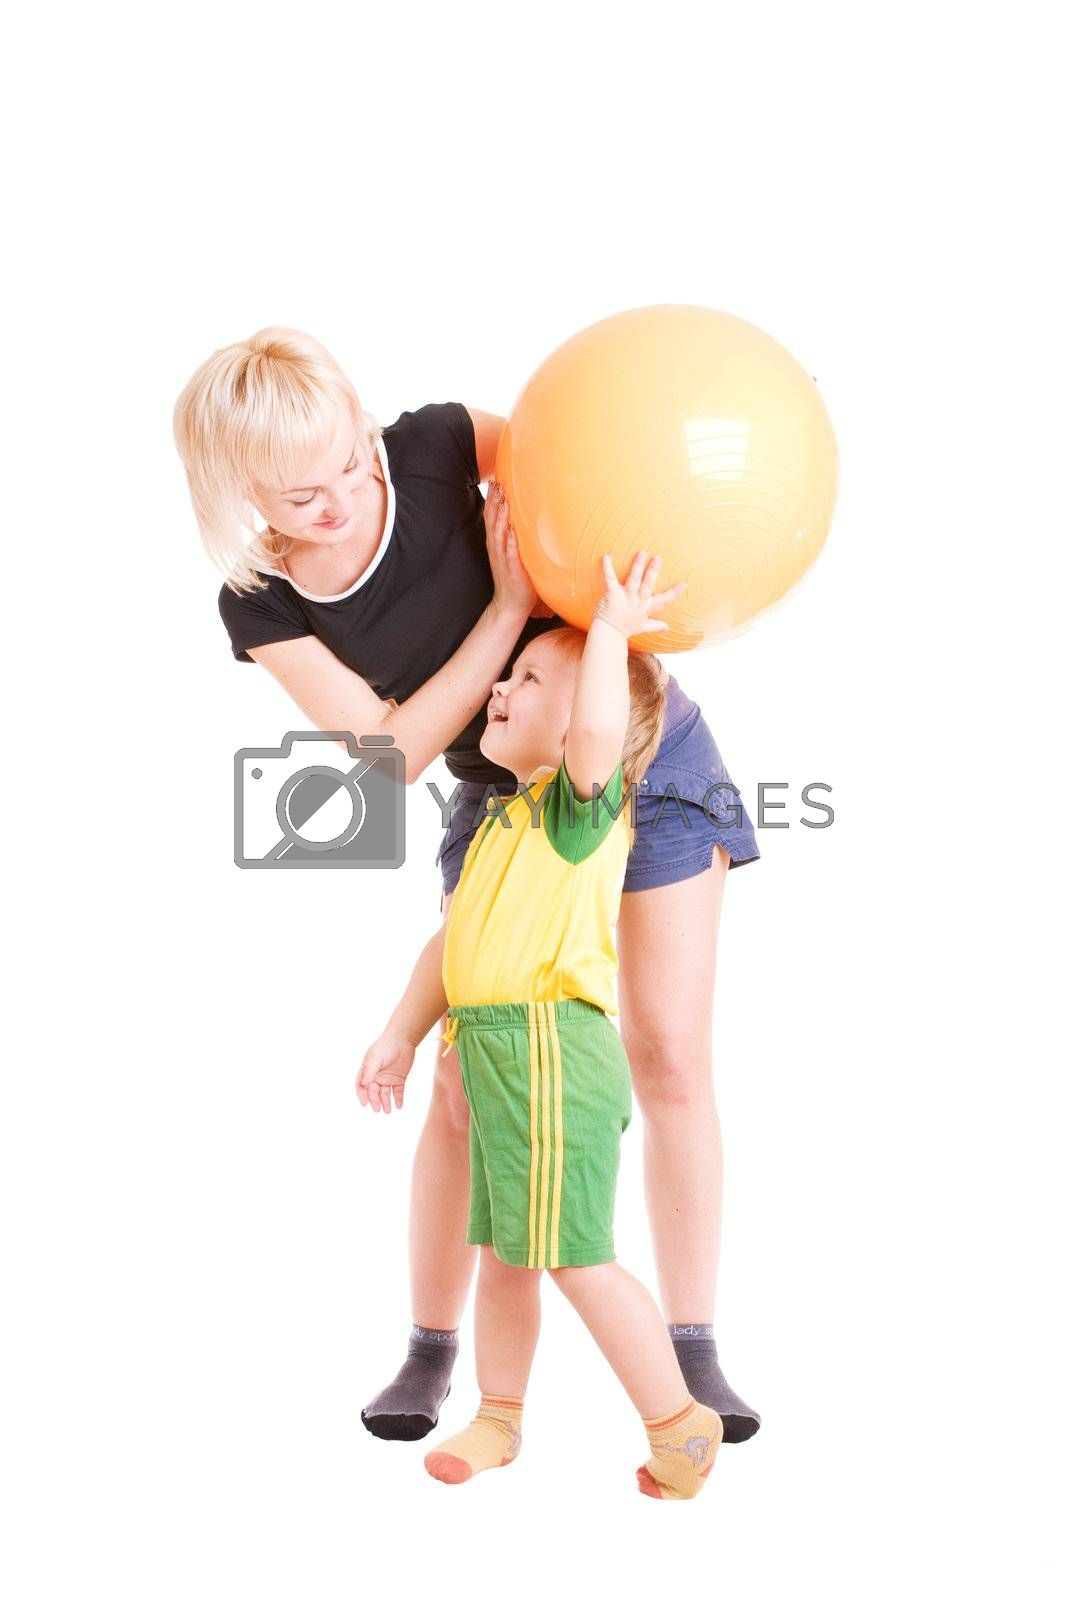 mother and her son looking one to another with a fitness ball in their hands